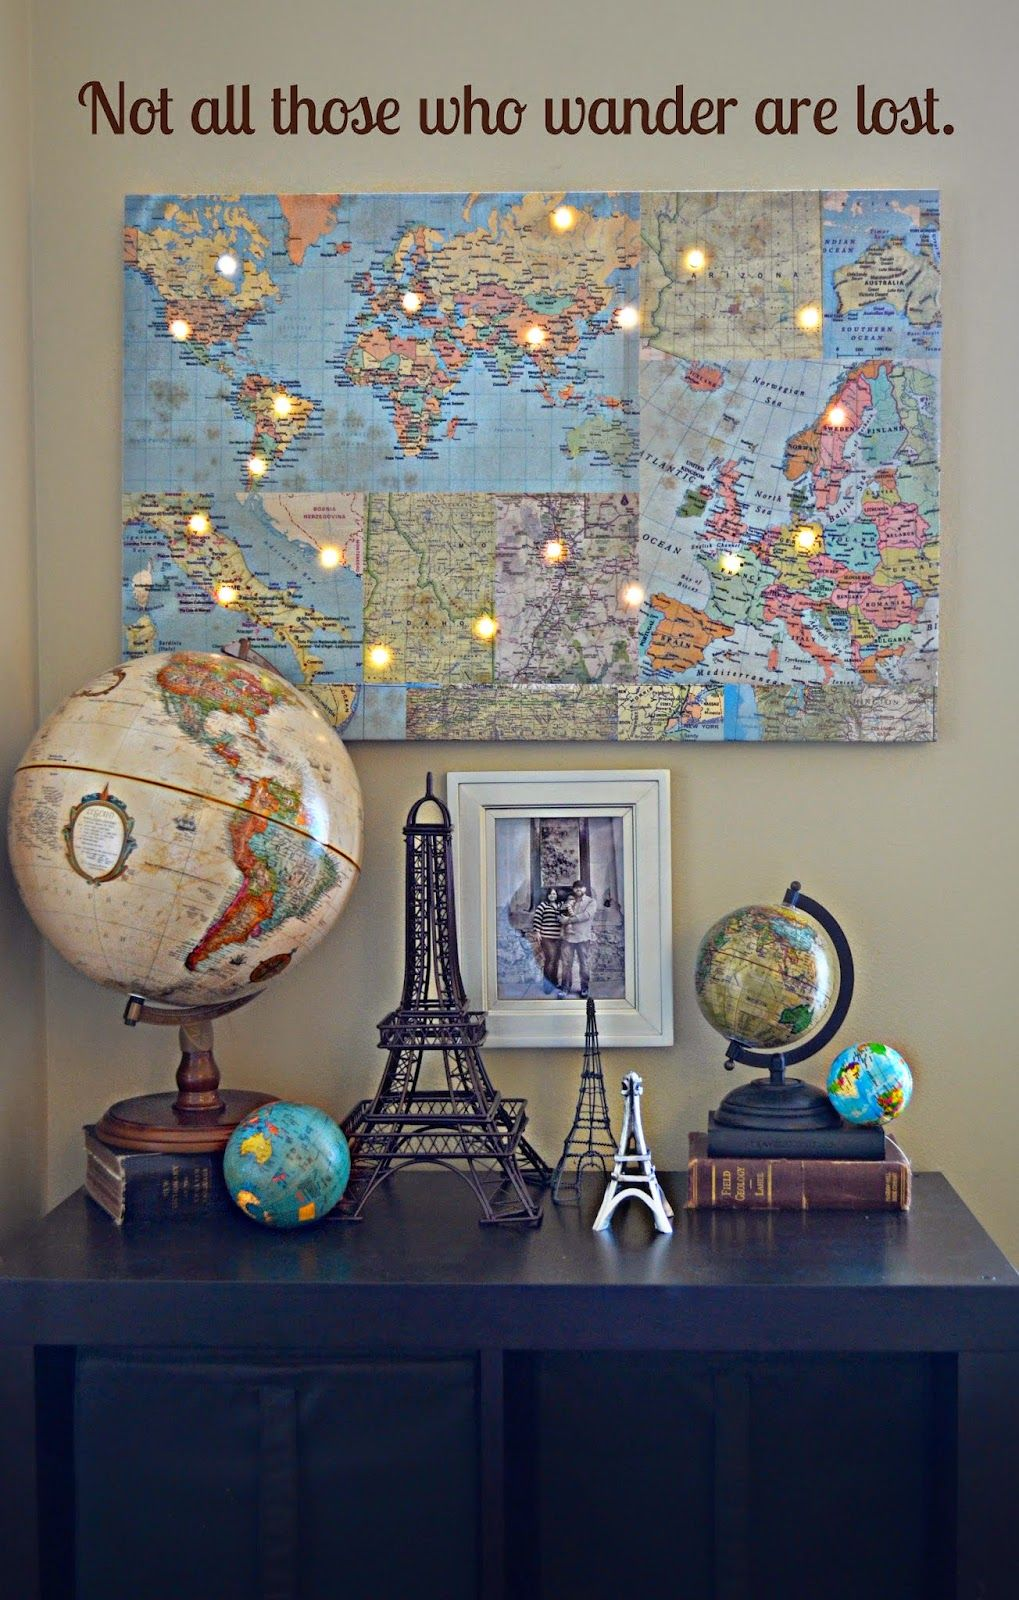 19 gorgeous travel-inspired diy projects | travel plans | pinterest